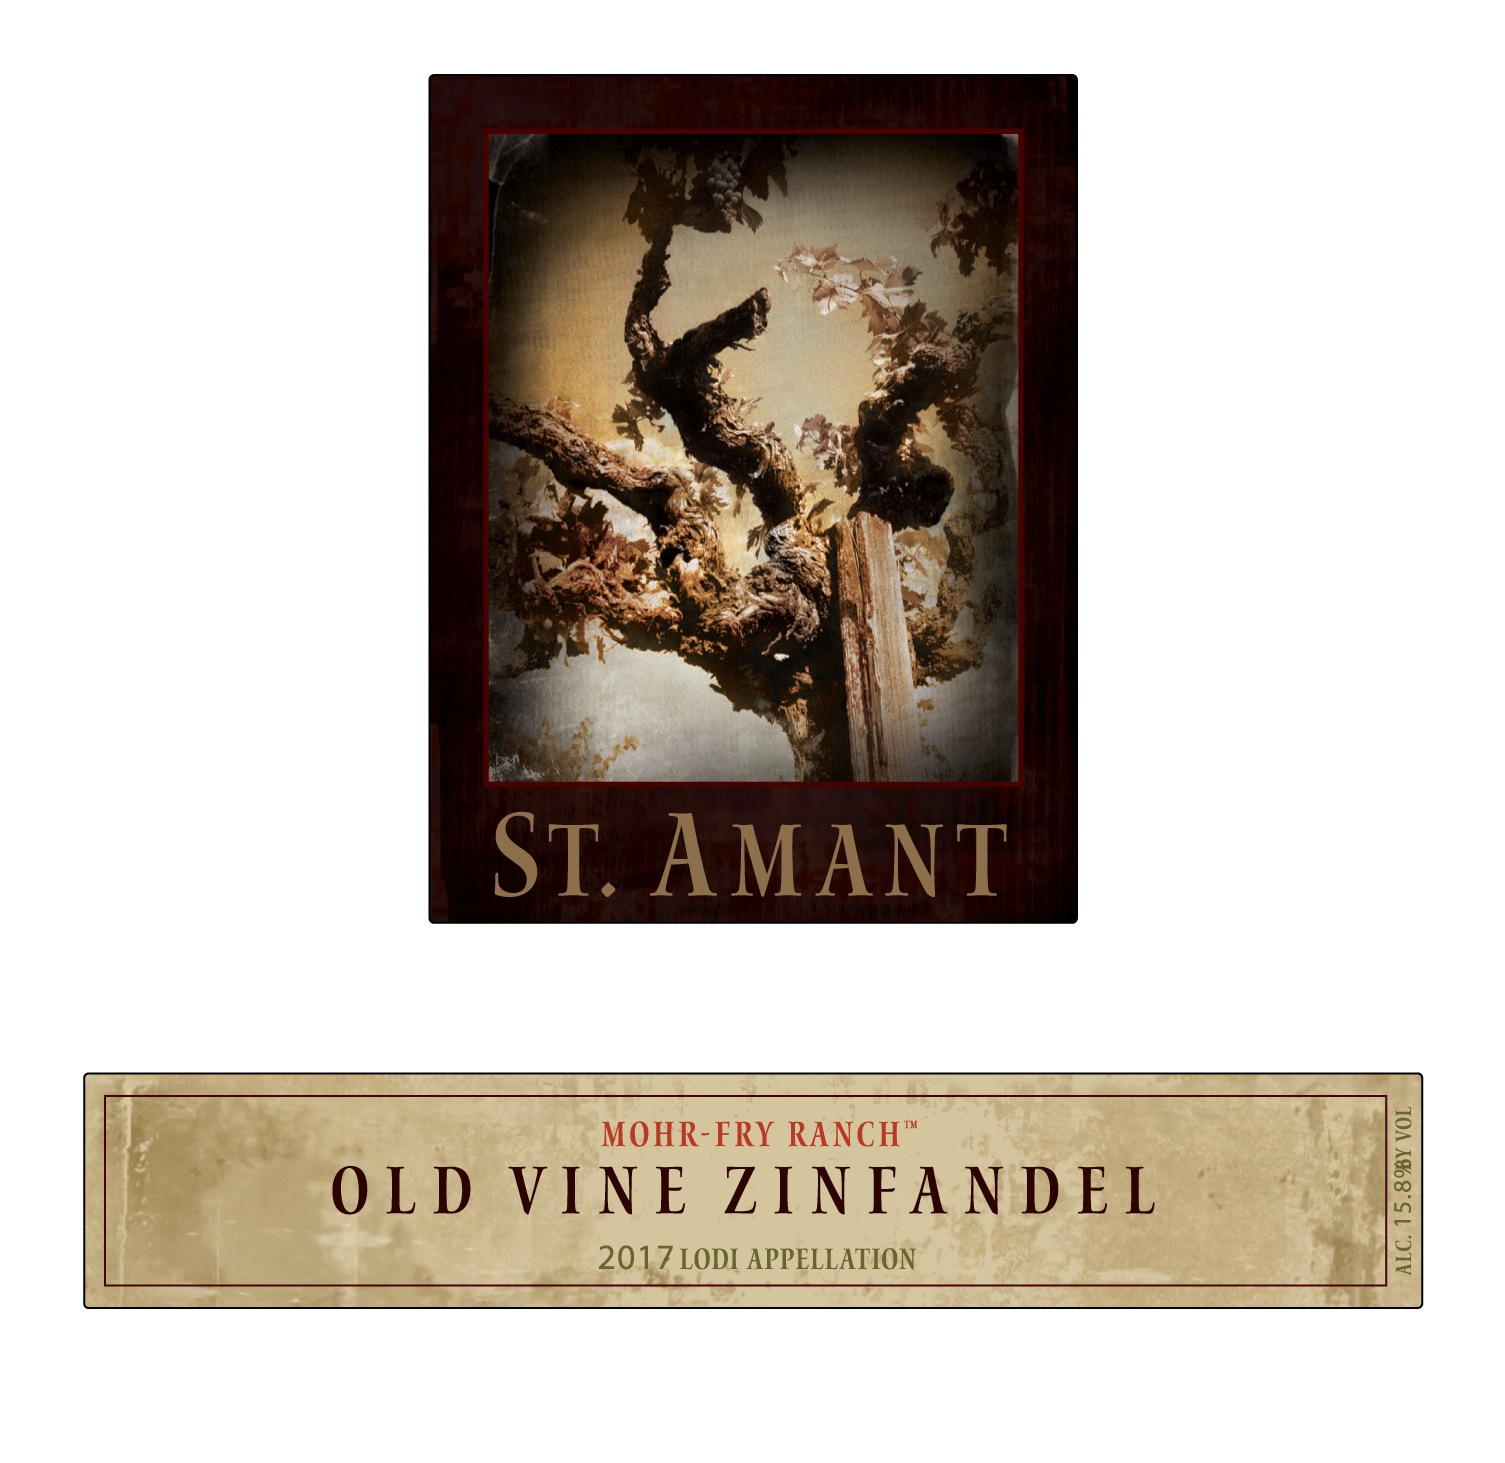 St. Amant Mohr-Fry Ranch Zinfandel Old Vine - Click Image to Close